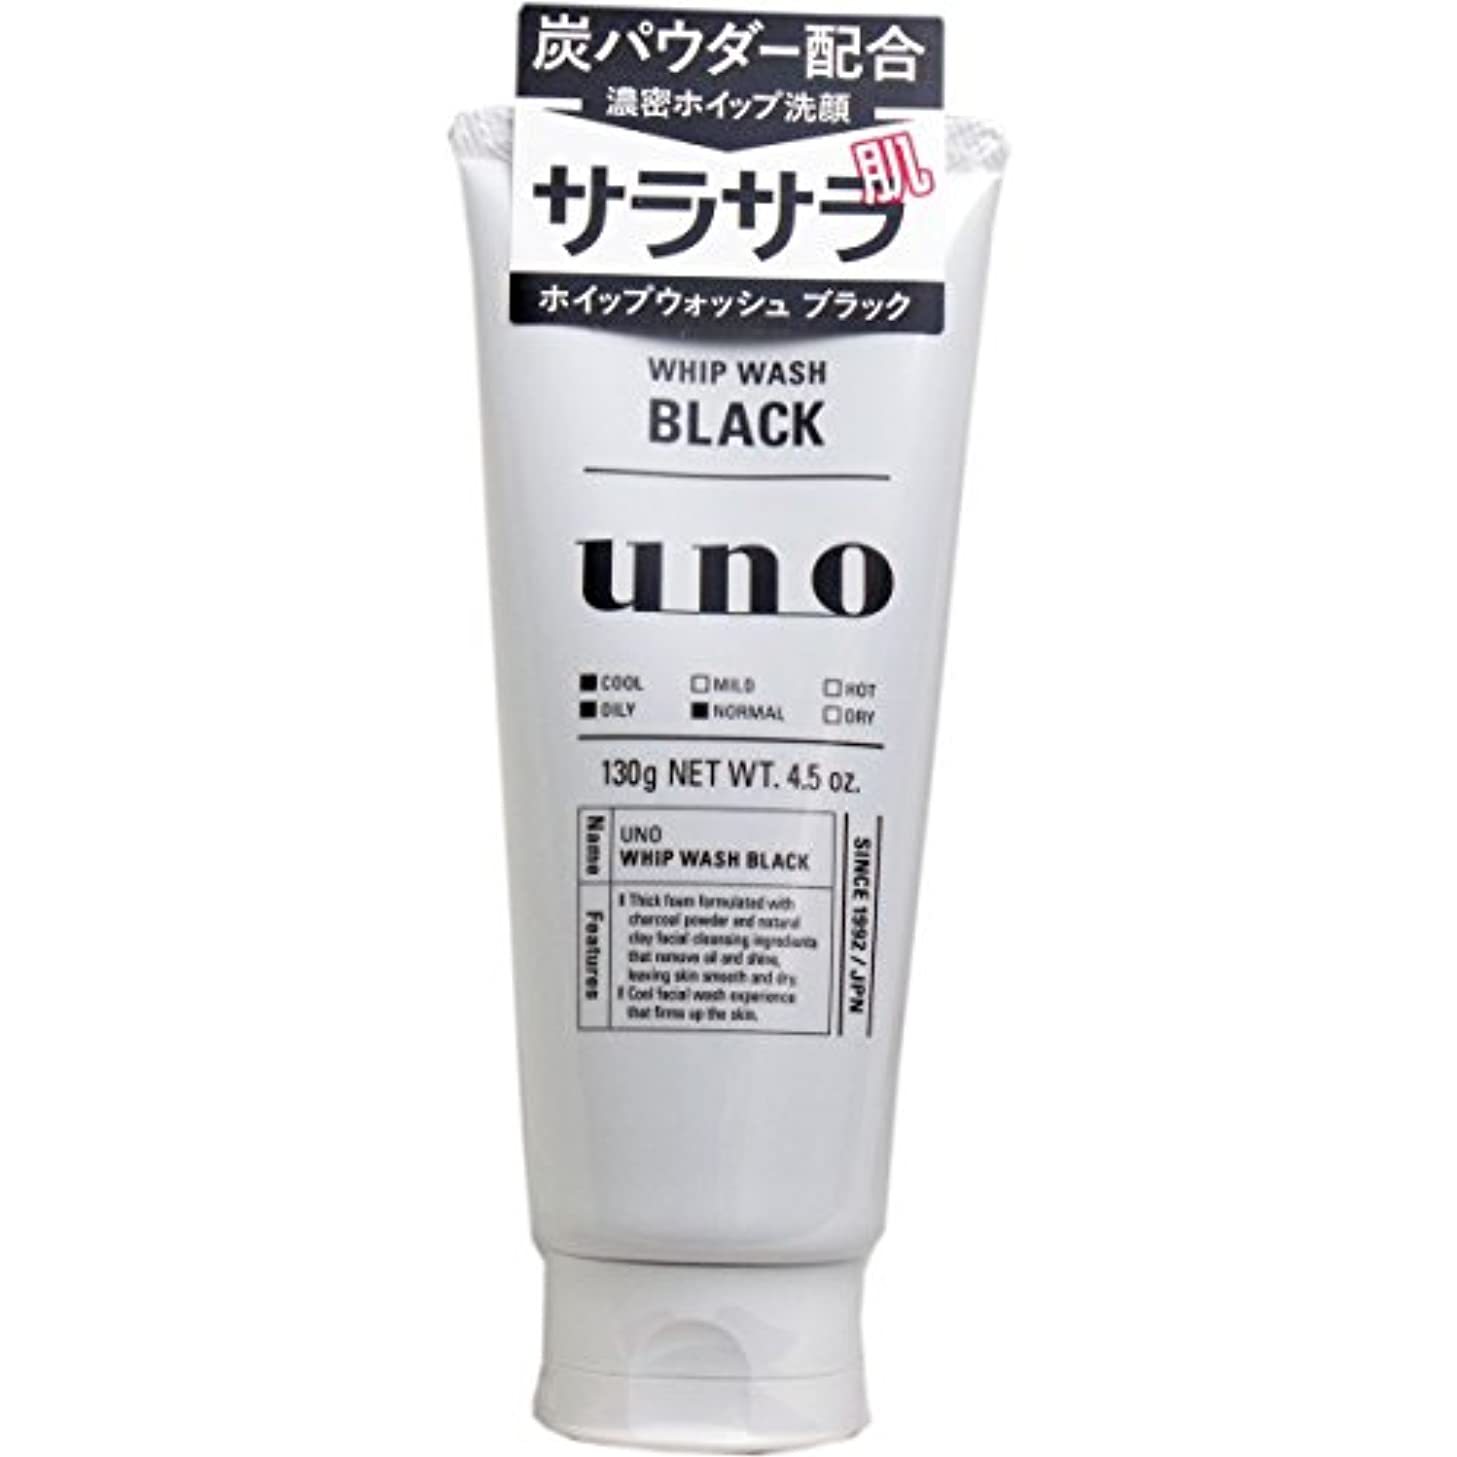 uno WHIP WASH BLACK 3個セット